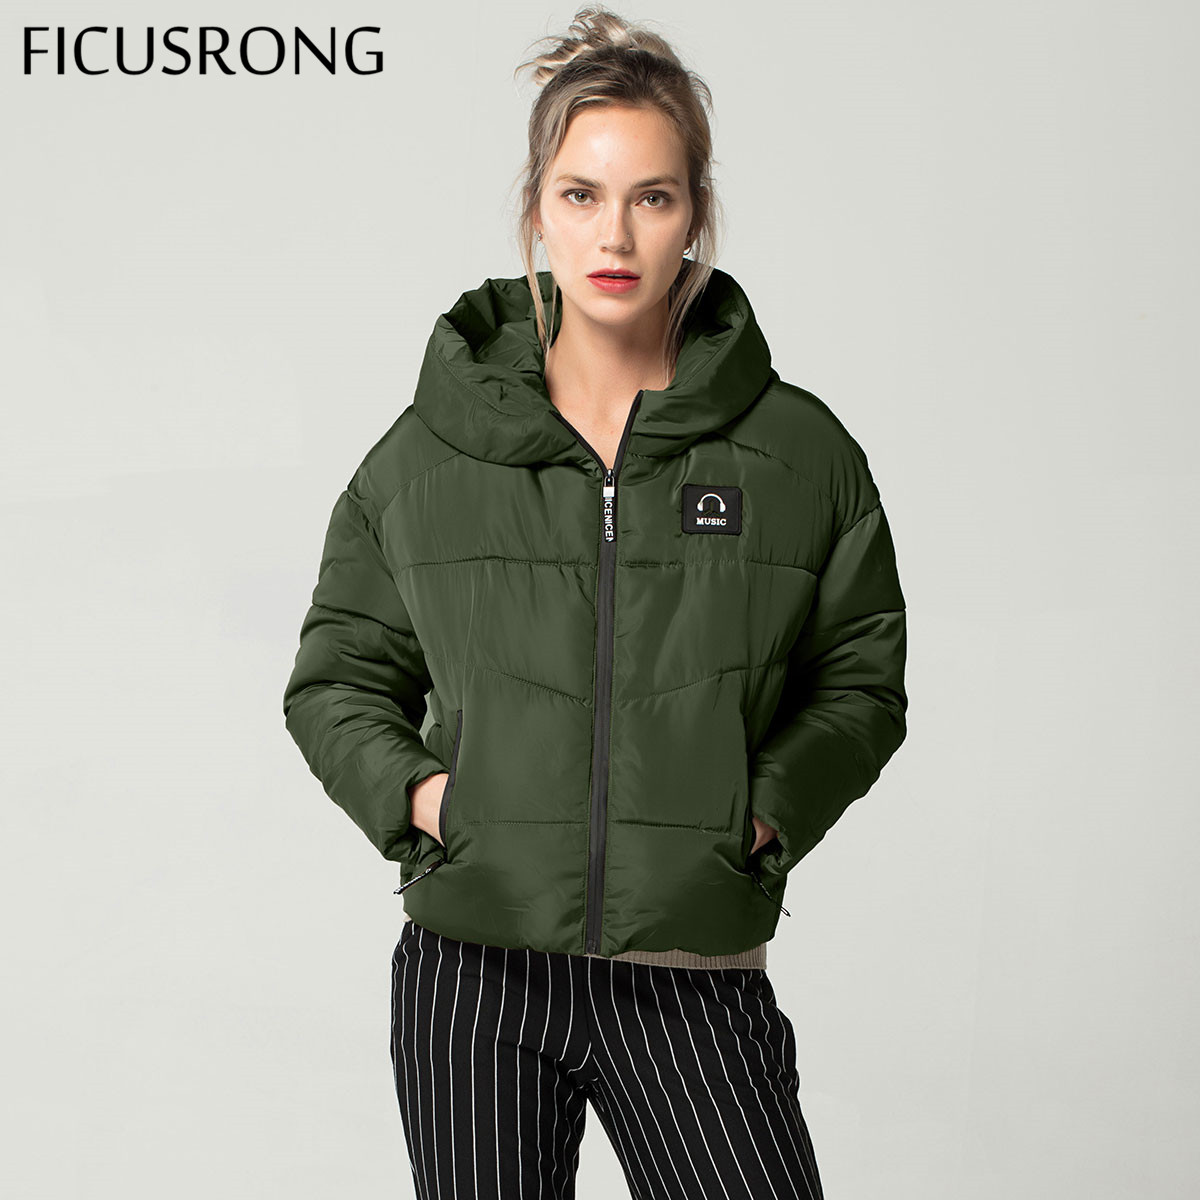 FICUSRONG New Fashion Winter   Jacket   Women Parkas Thick Outerwear Womens Hooded Coats Female Slim Cotton Padded   Basic     Jacket   Tops